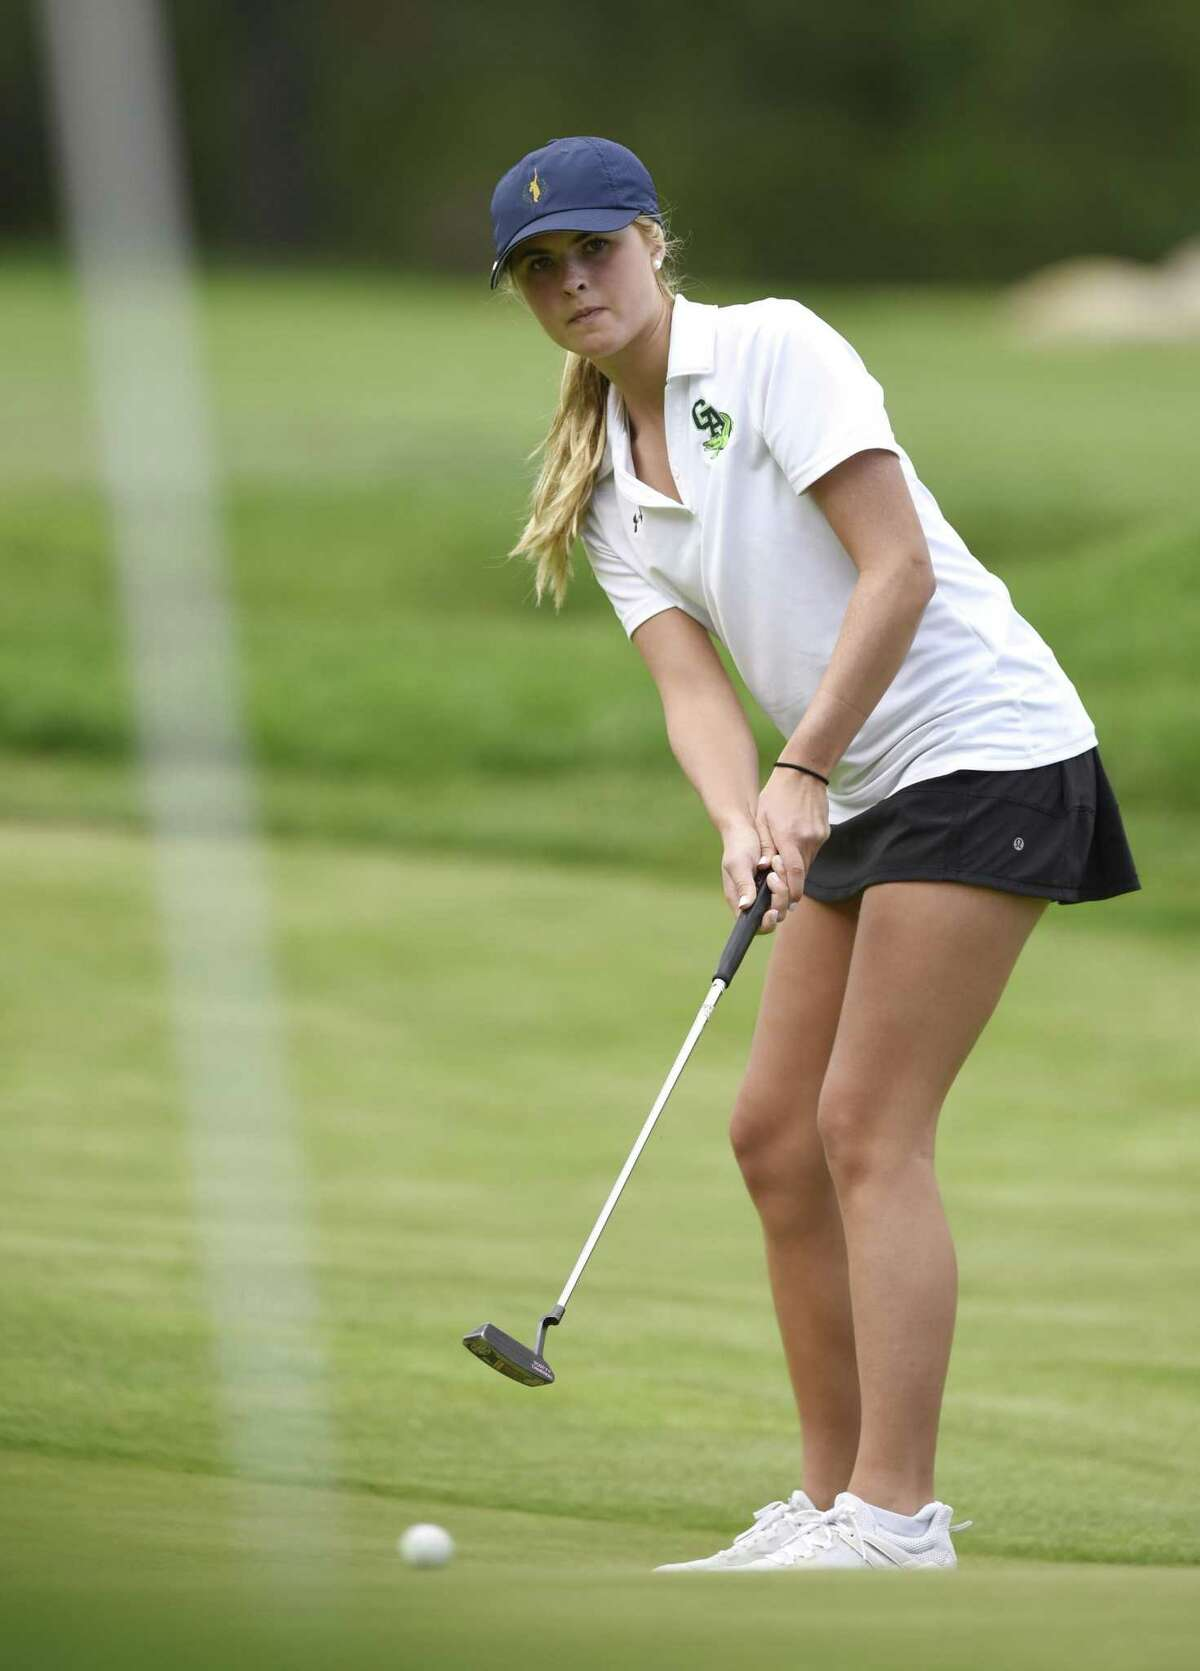 Greenwich Academy's Katie Dzialga competes on Monday at the Round Hill Club in Greenwich. She shot a 41.